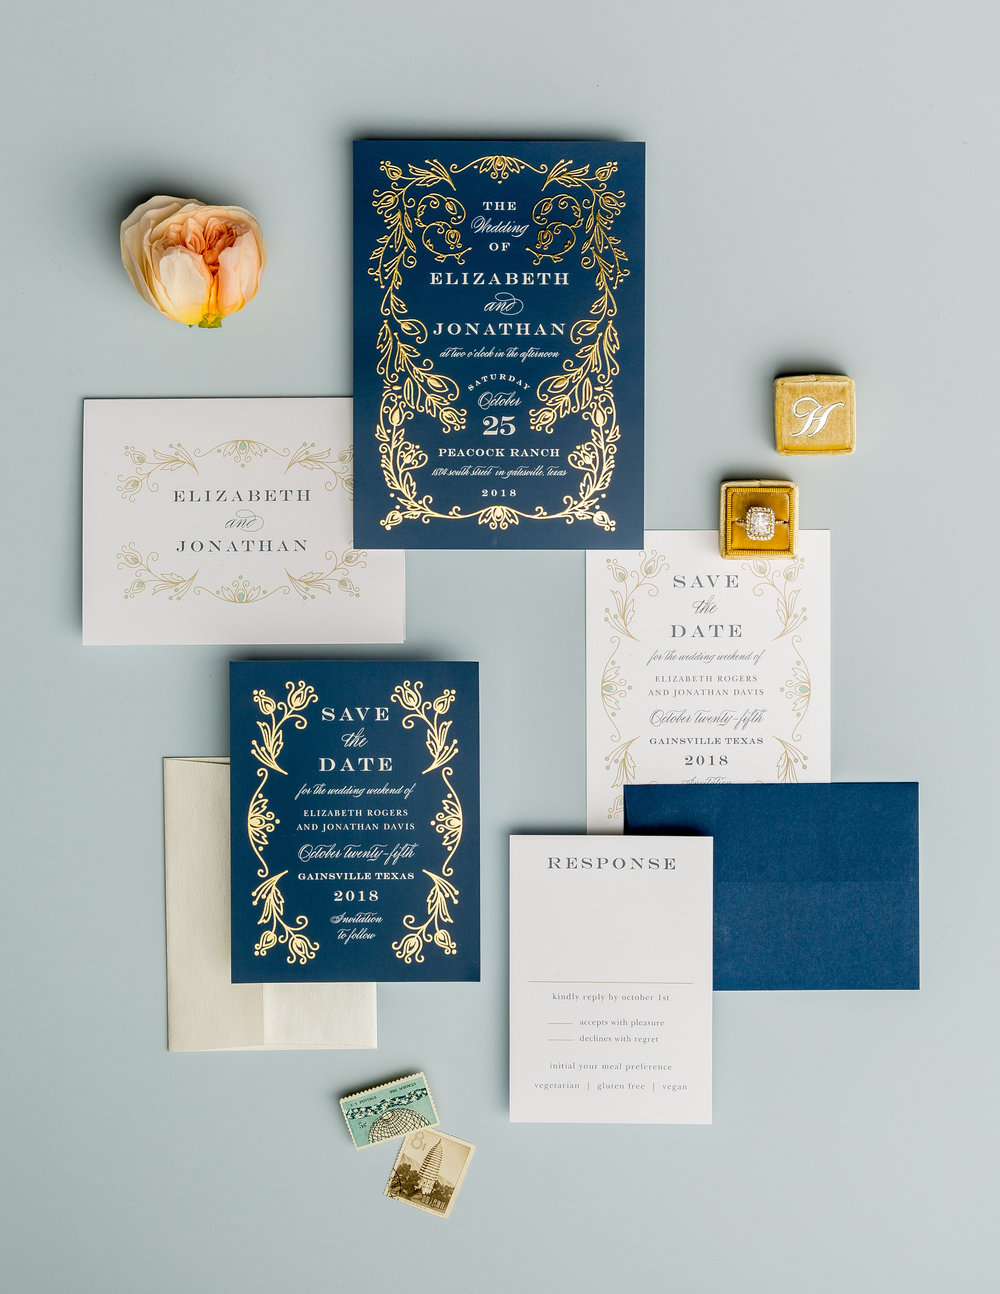 Basic_Invite_Wedding_Invitations_12.JPG